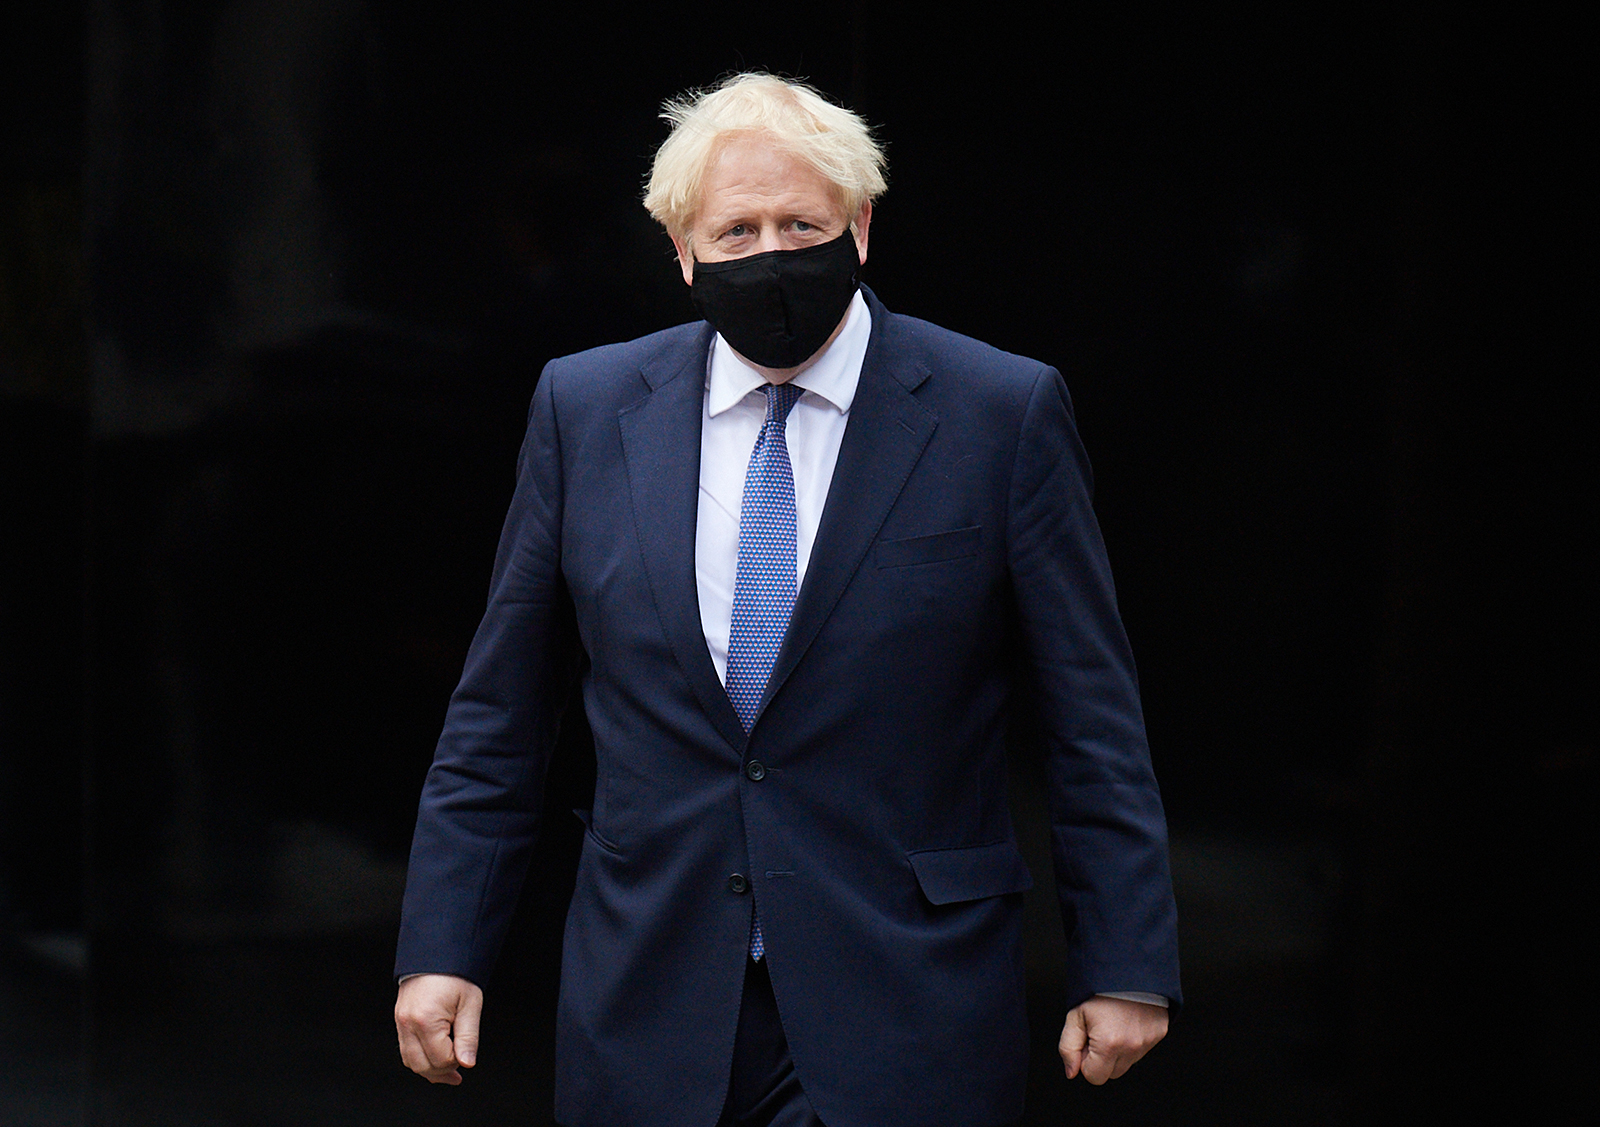 Prime Minister Boris Johnson visits the headquarters of Octopus Energy on October 5, in London, England.